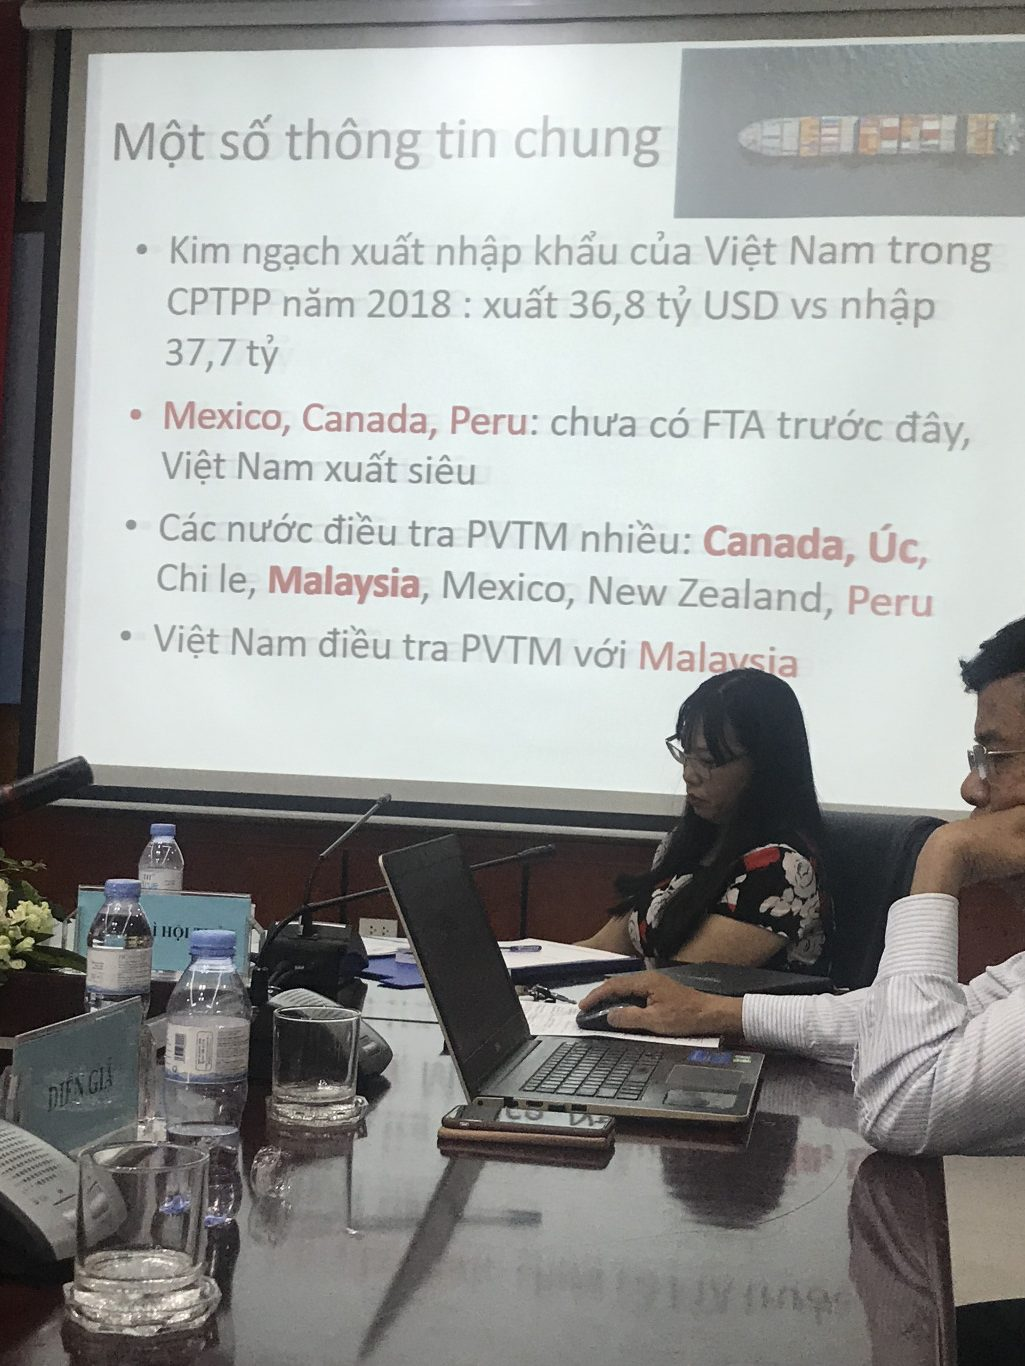 The seminar also discussed about the commitments of safeguard measures under CPTPP. Some recommendations are mentioned so that Vietnamese enterprises could avoid investigations from other countries.